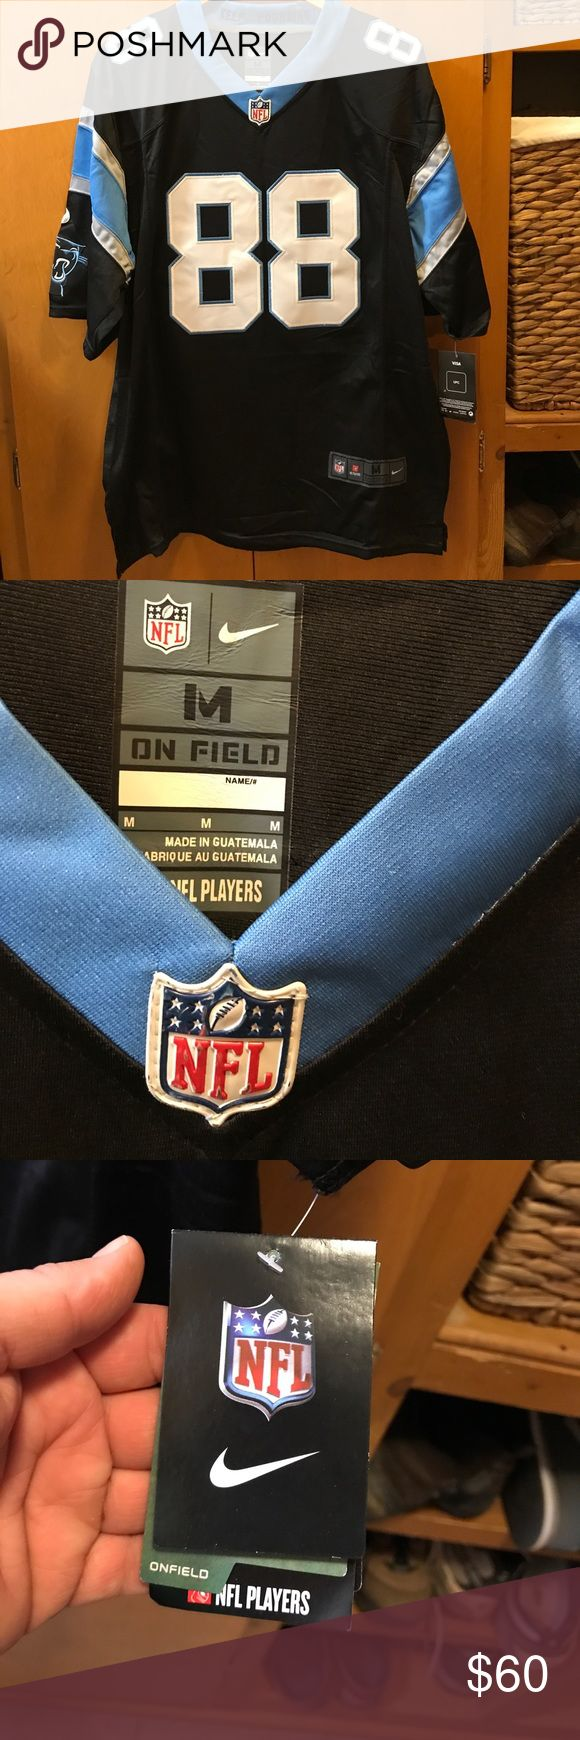 Men's Carolina Panthers Olsen NFL Onfield Jersey Men's Size M Carolina Panthers Greg Olsen NFL Players Onfield Jersey. NWT!  Brand New! 😁 Nike NFL Players Other